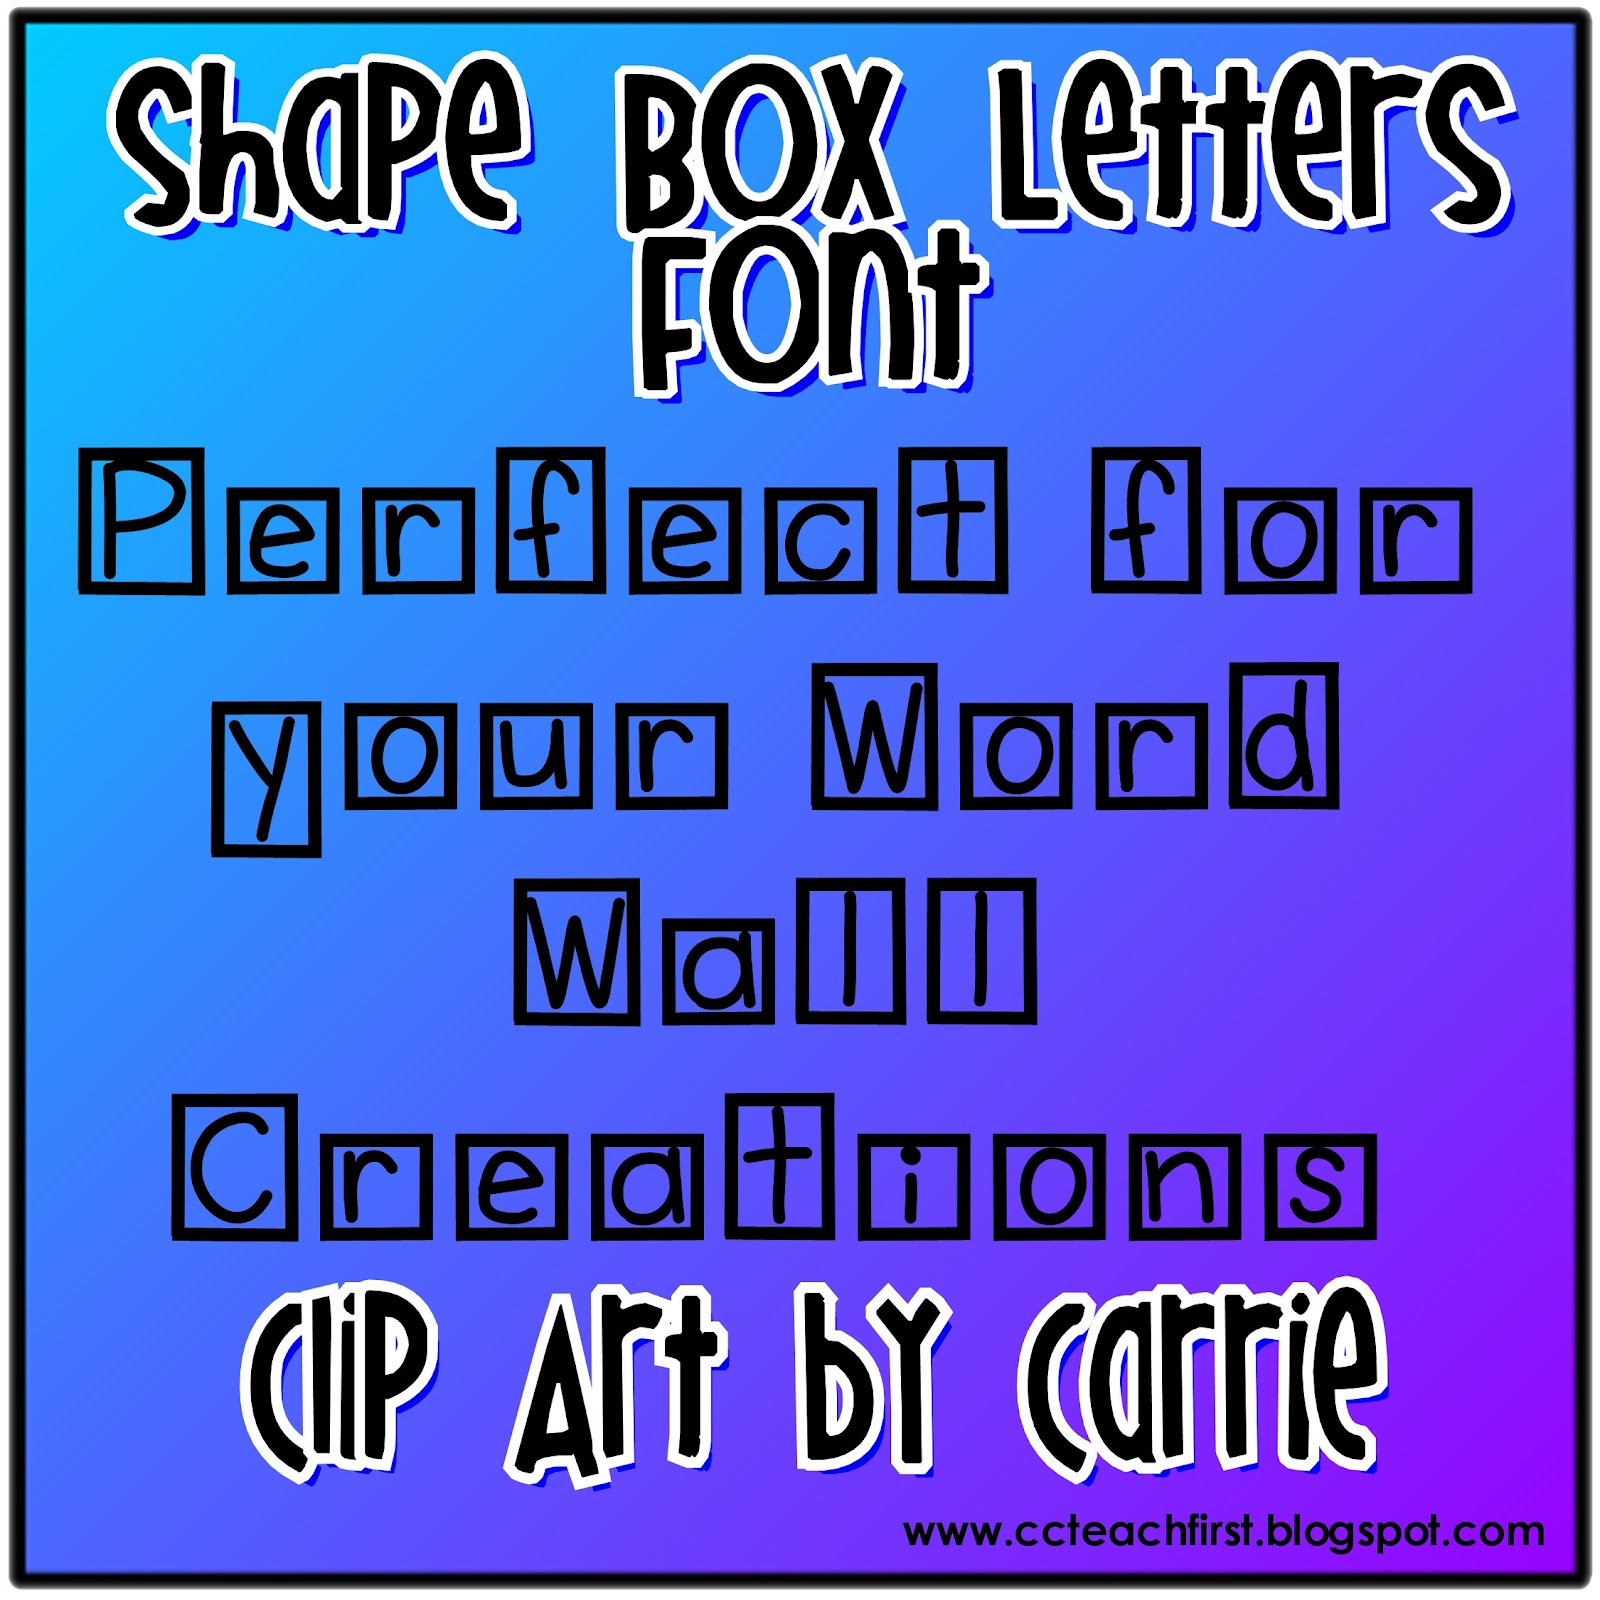 Clip Art by Carrie Teaching First: Shape Box Letters Font